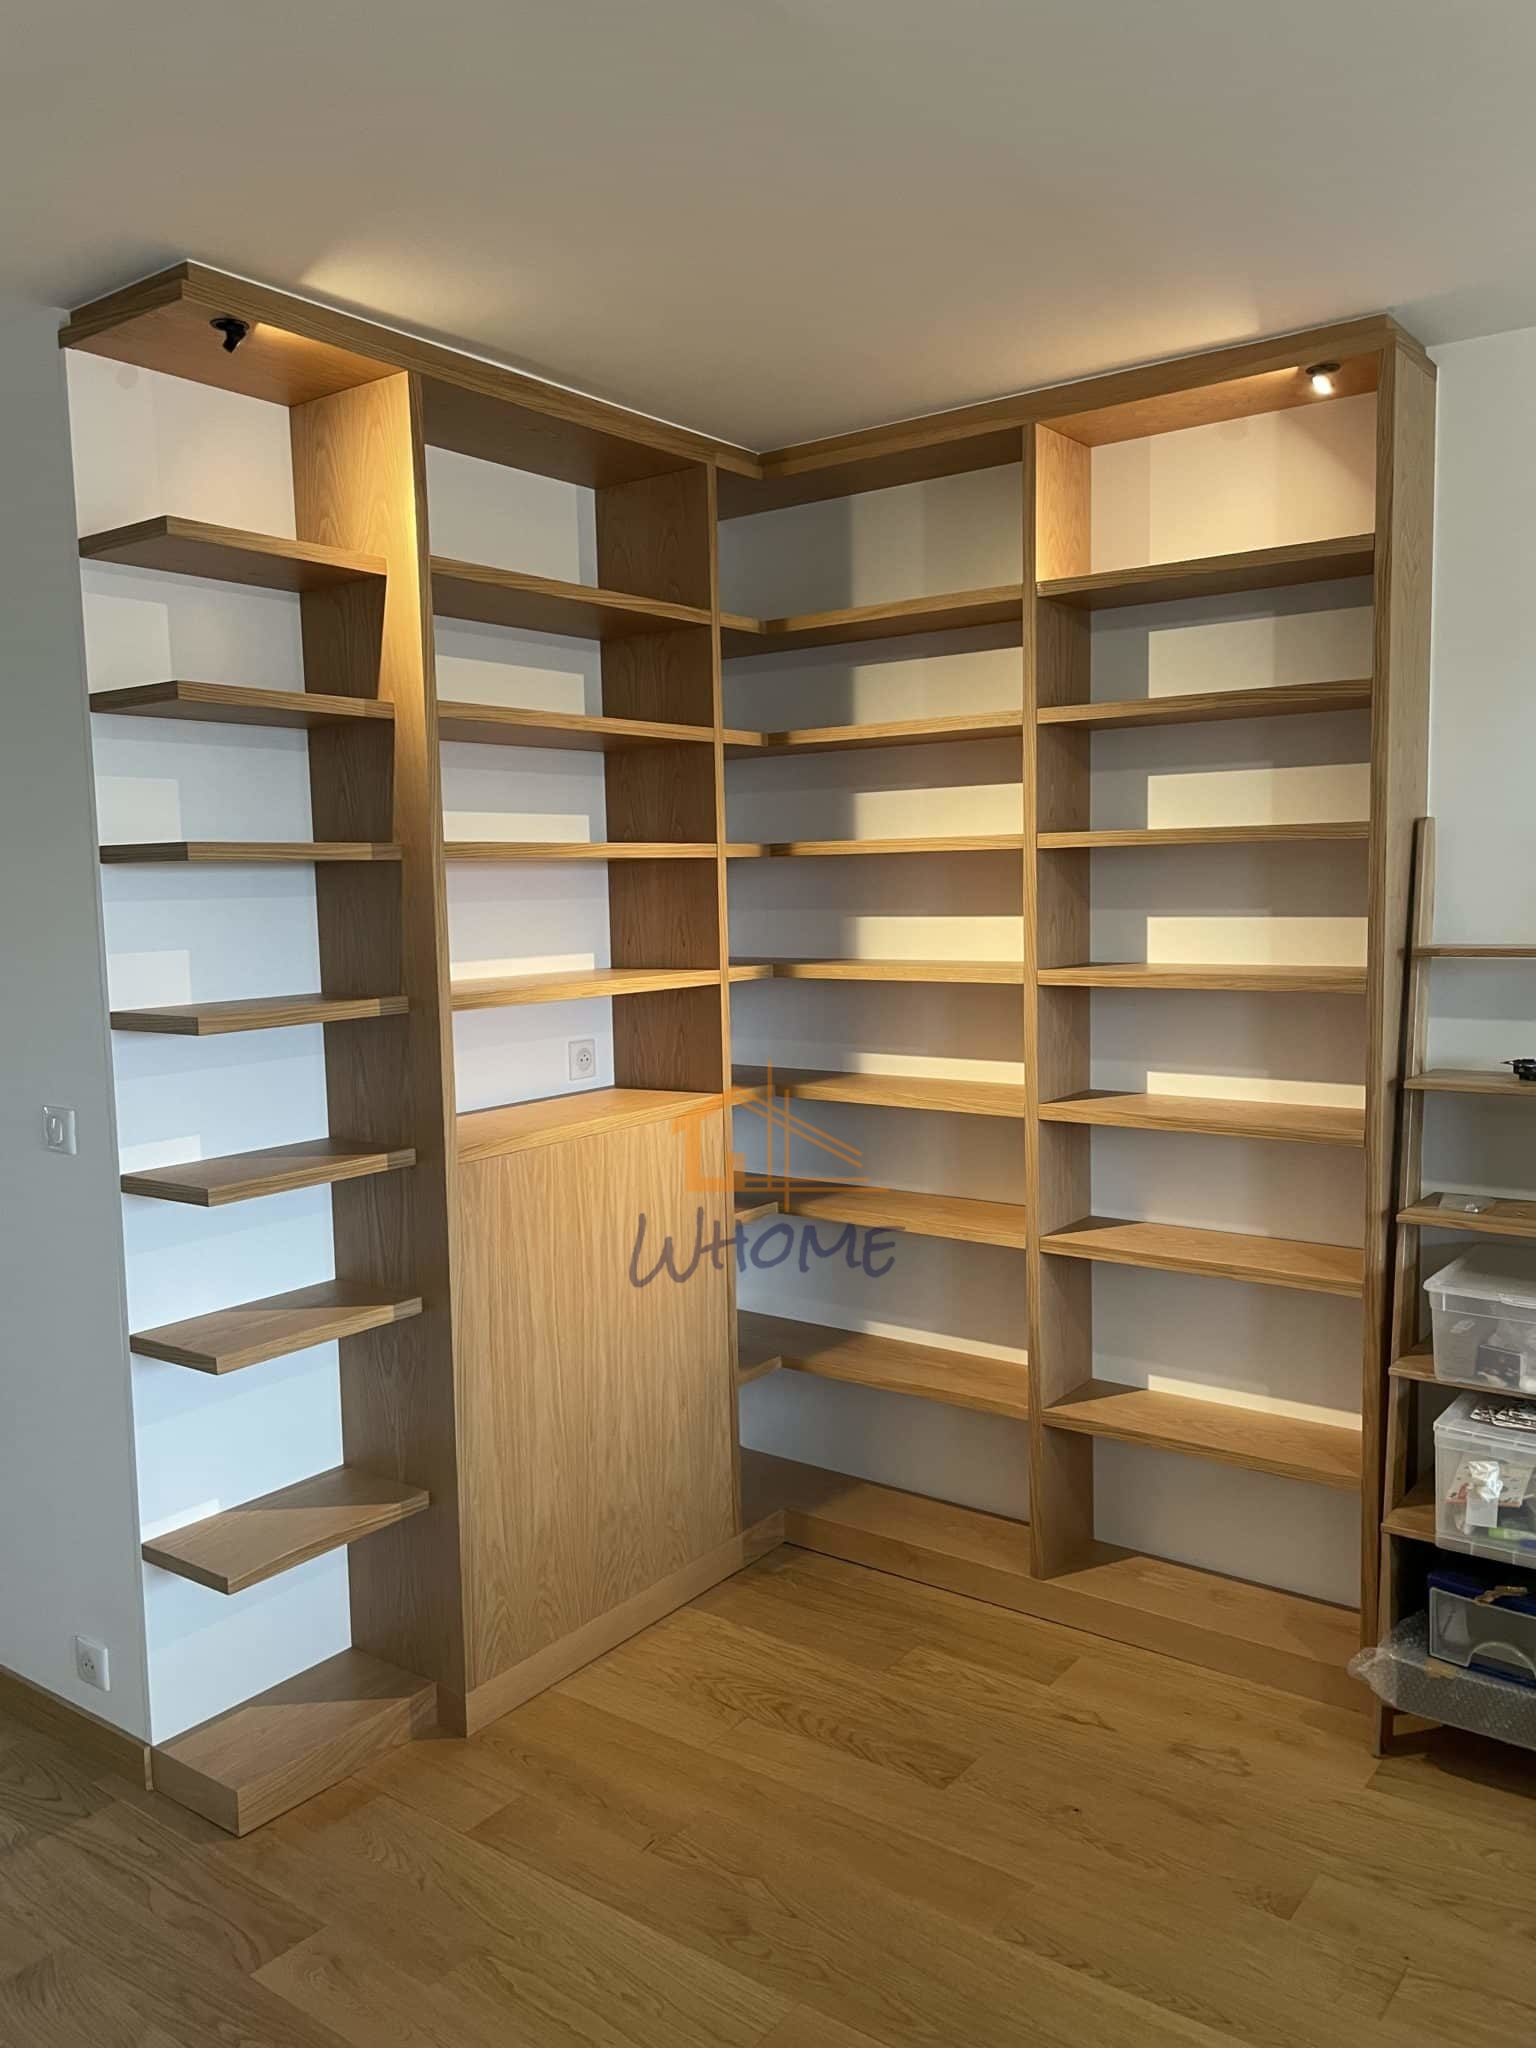 whome-creation-bibliotheque-sur-mesure-houilles